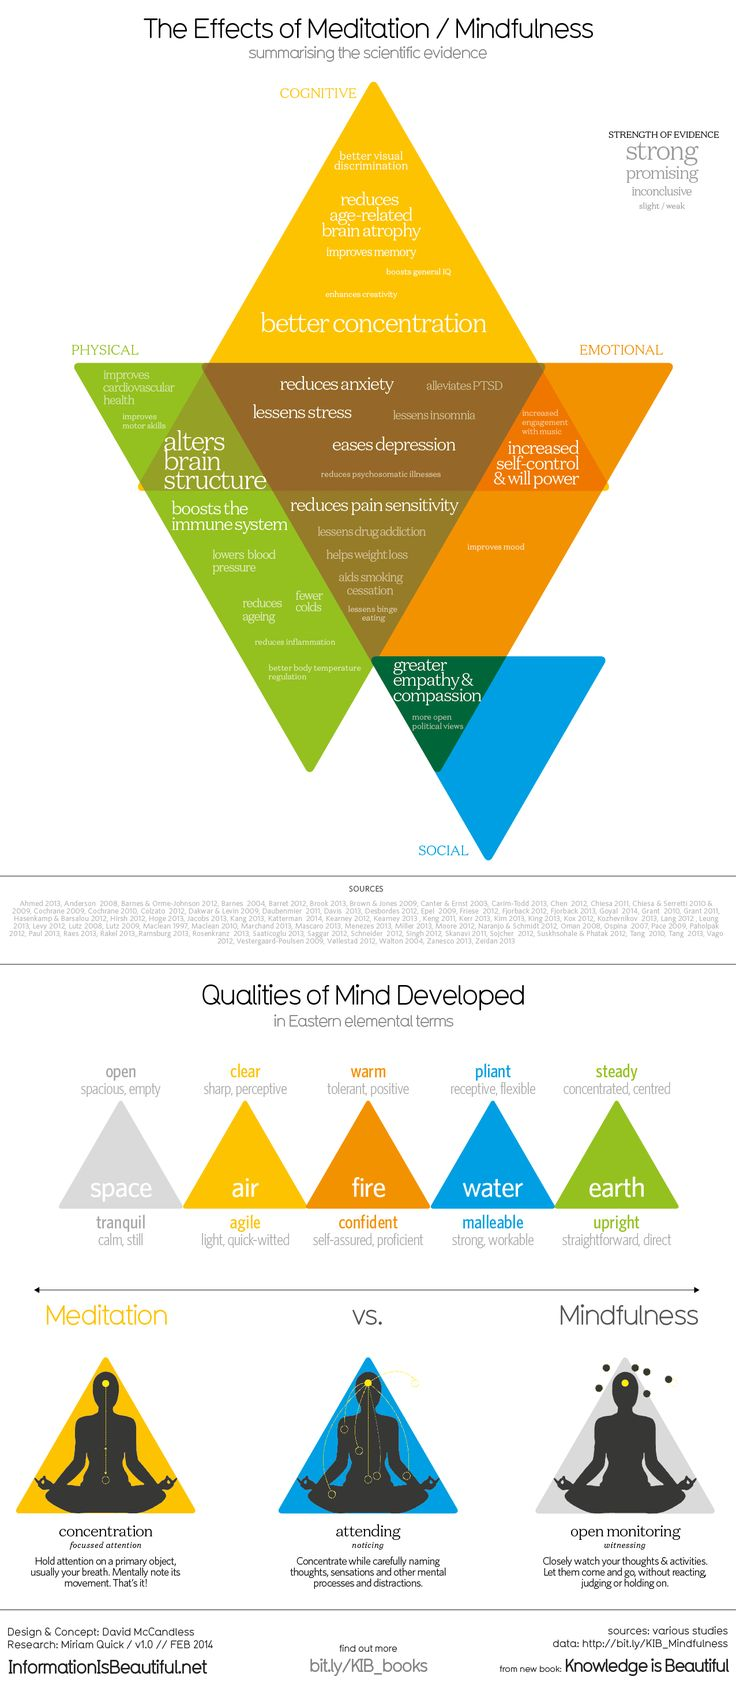 Mindfulness and meditation offer a host of benefits that we're still learning about via scientific studies. Information is Beautiful's infographic below reveals the effects of meditation and mindfulness practices--from boosting concentration to making us more empathetic.